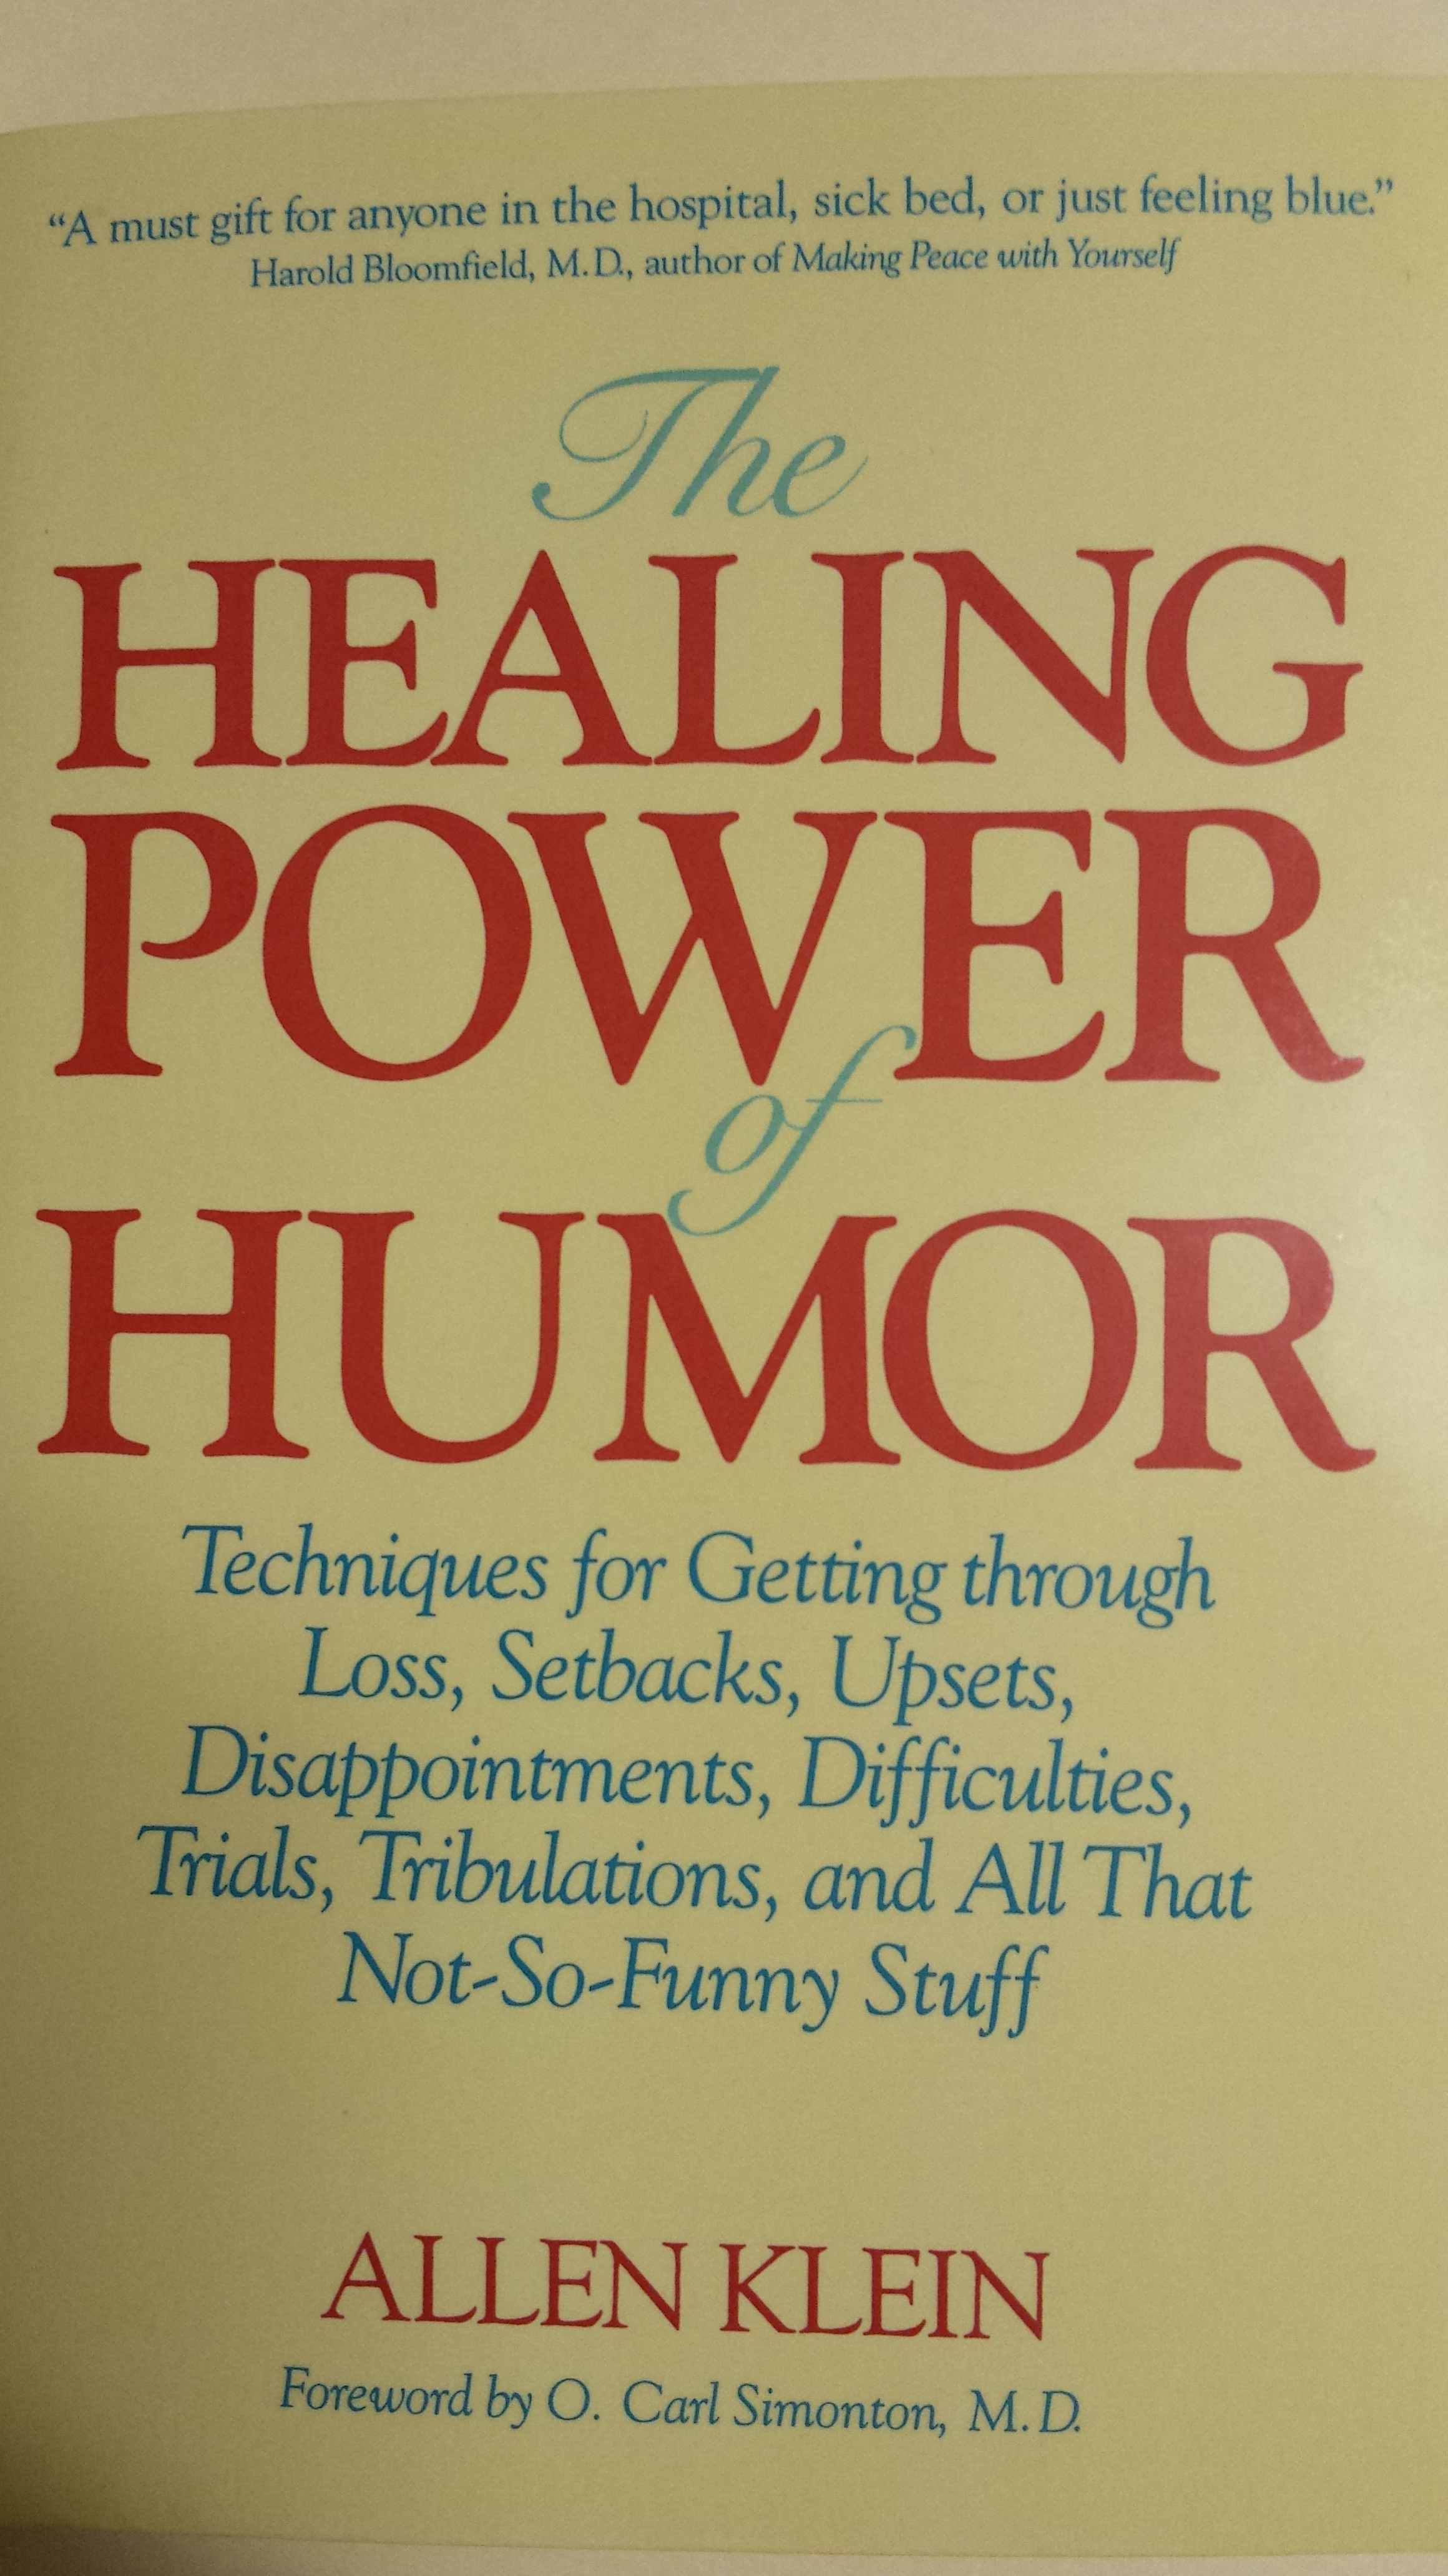 The Healing Power of Humor, by Allen Klein | Momentum, Science & the ...